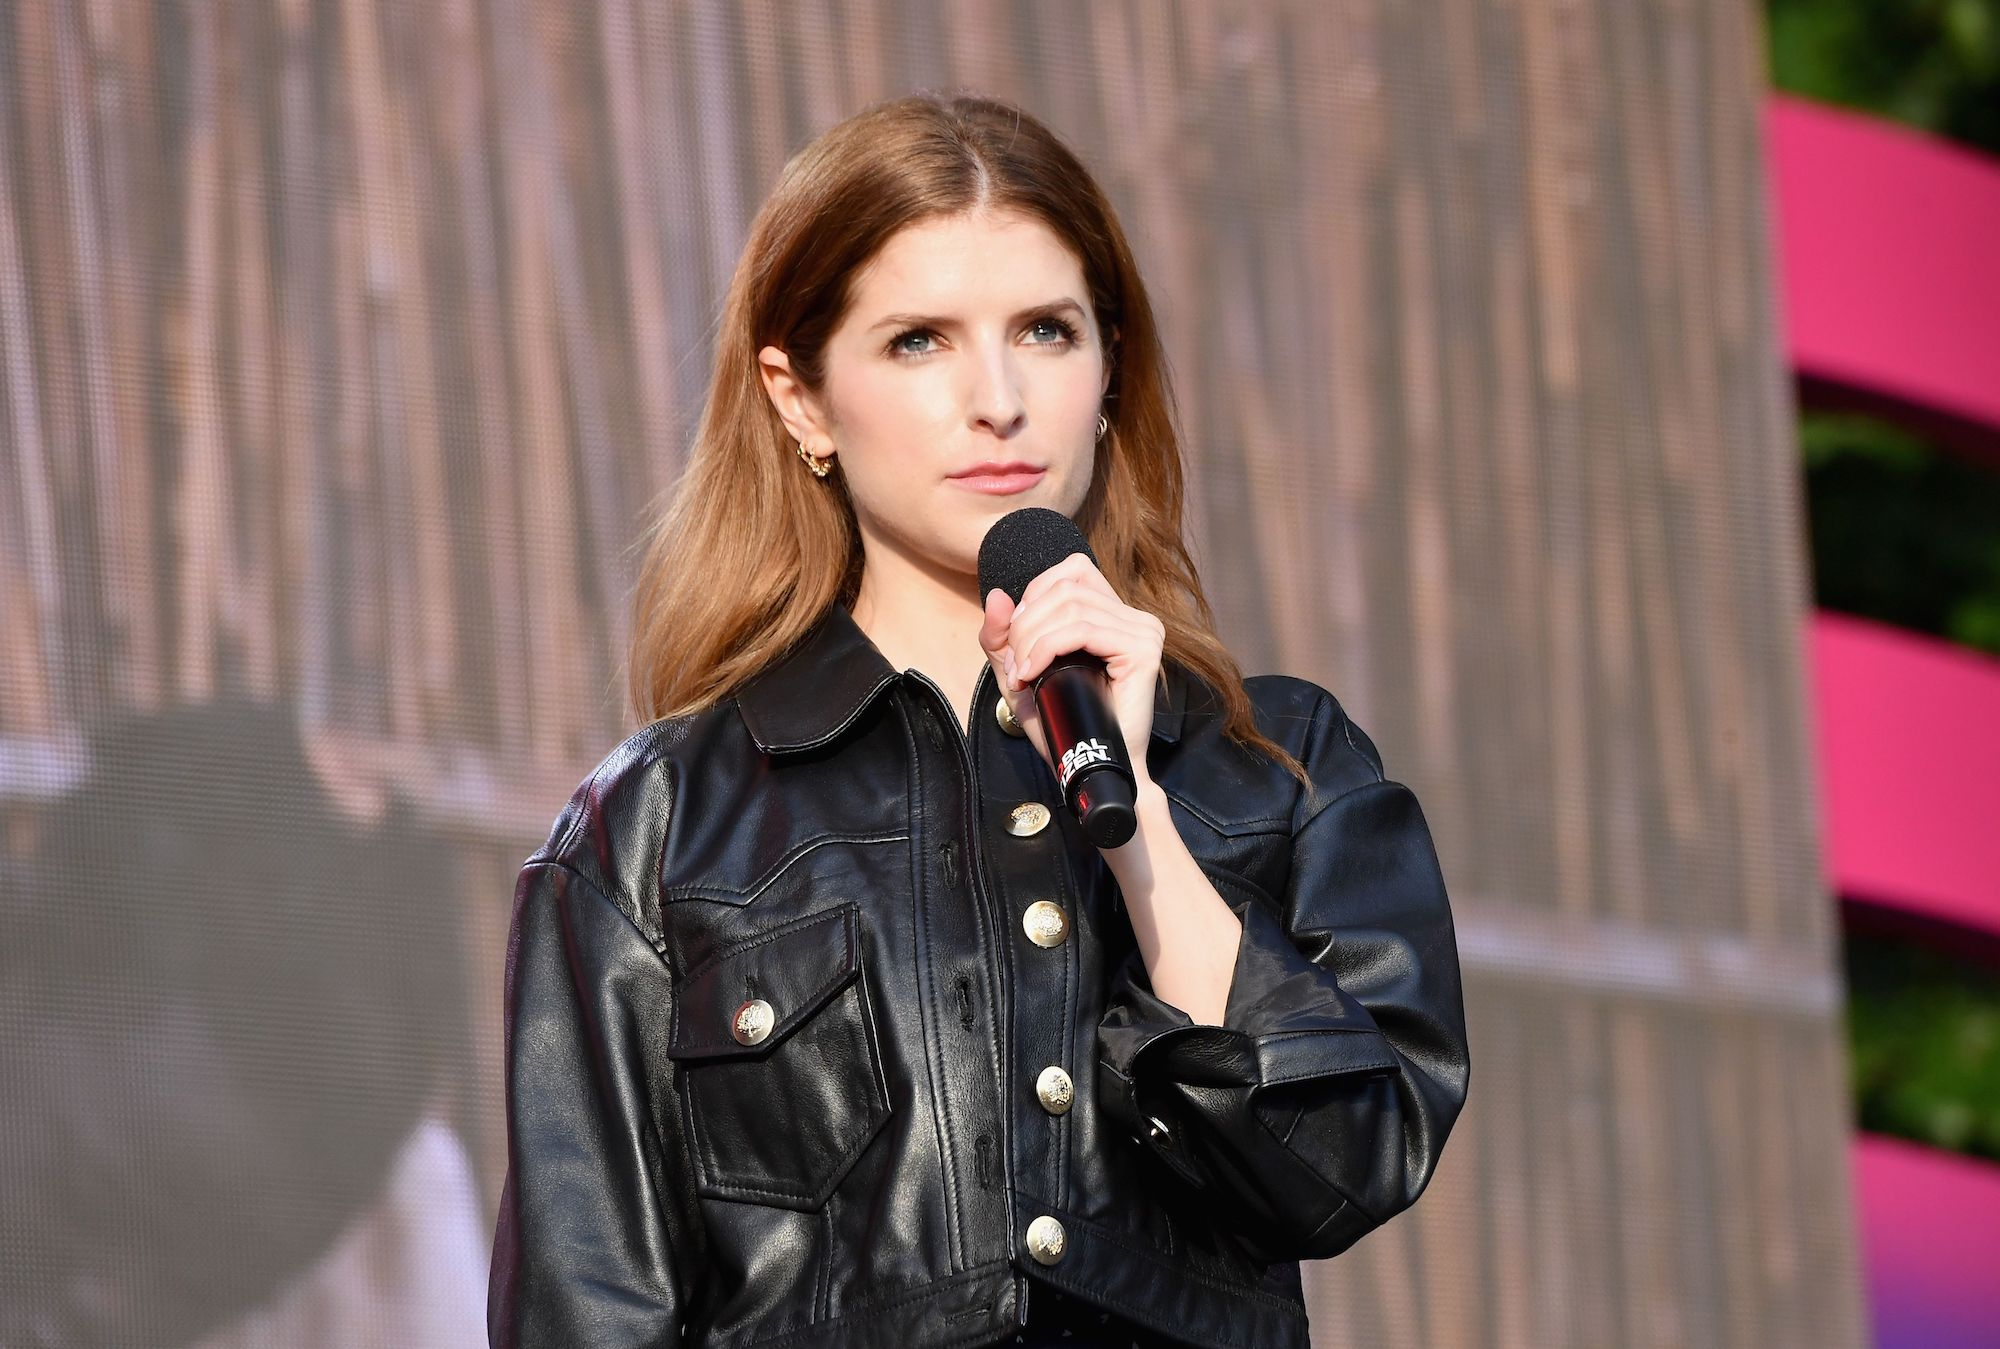 Anna Kendrick at the 2019 Global Citizen Festival: Power The Movement in Central Park on Sept. 28, 2019.